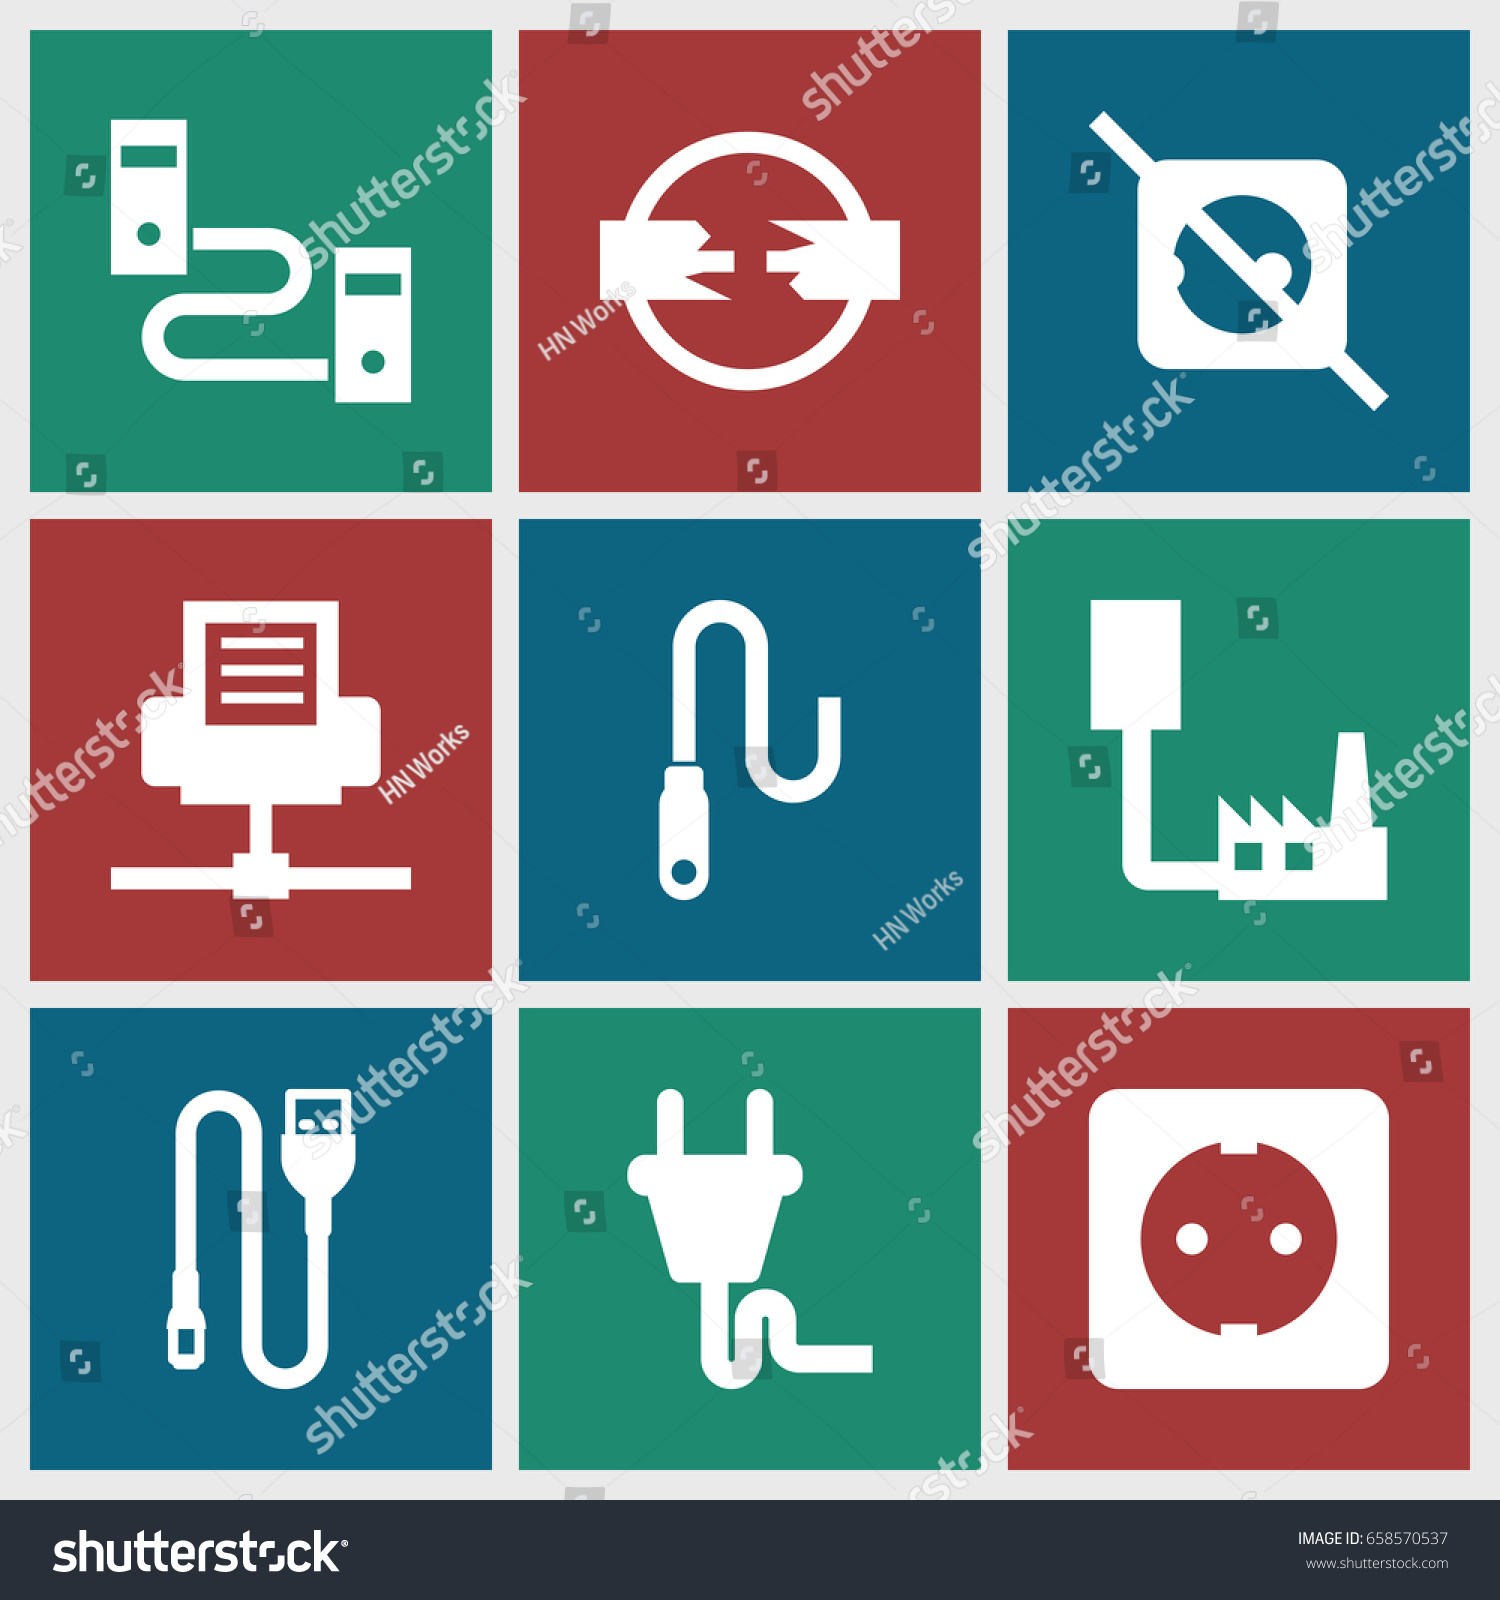 Stunning 4 Wire Phone Cord Images - Electrical Circuit Diagram ...